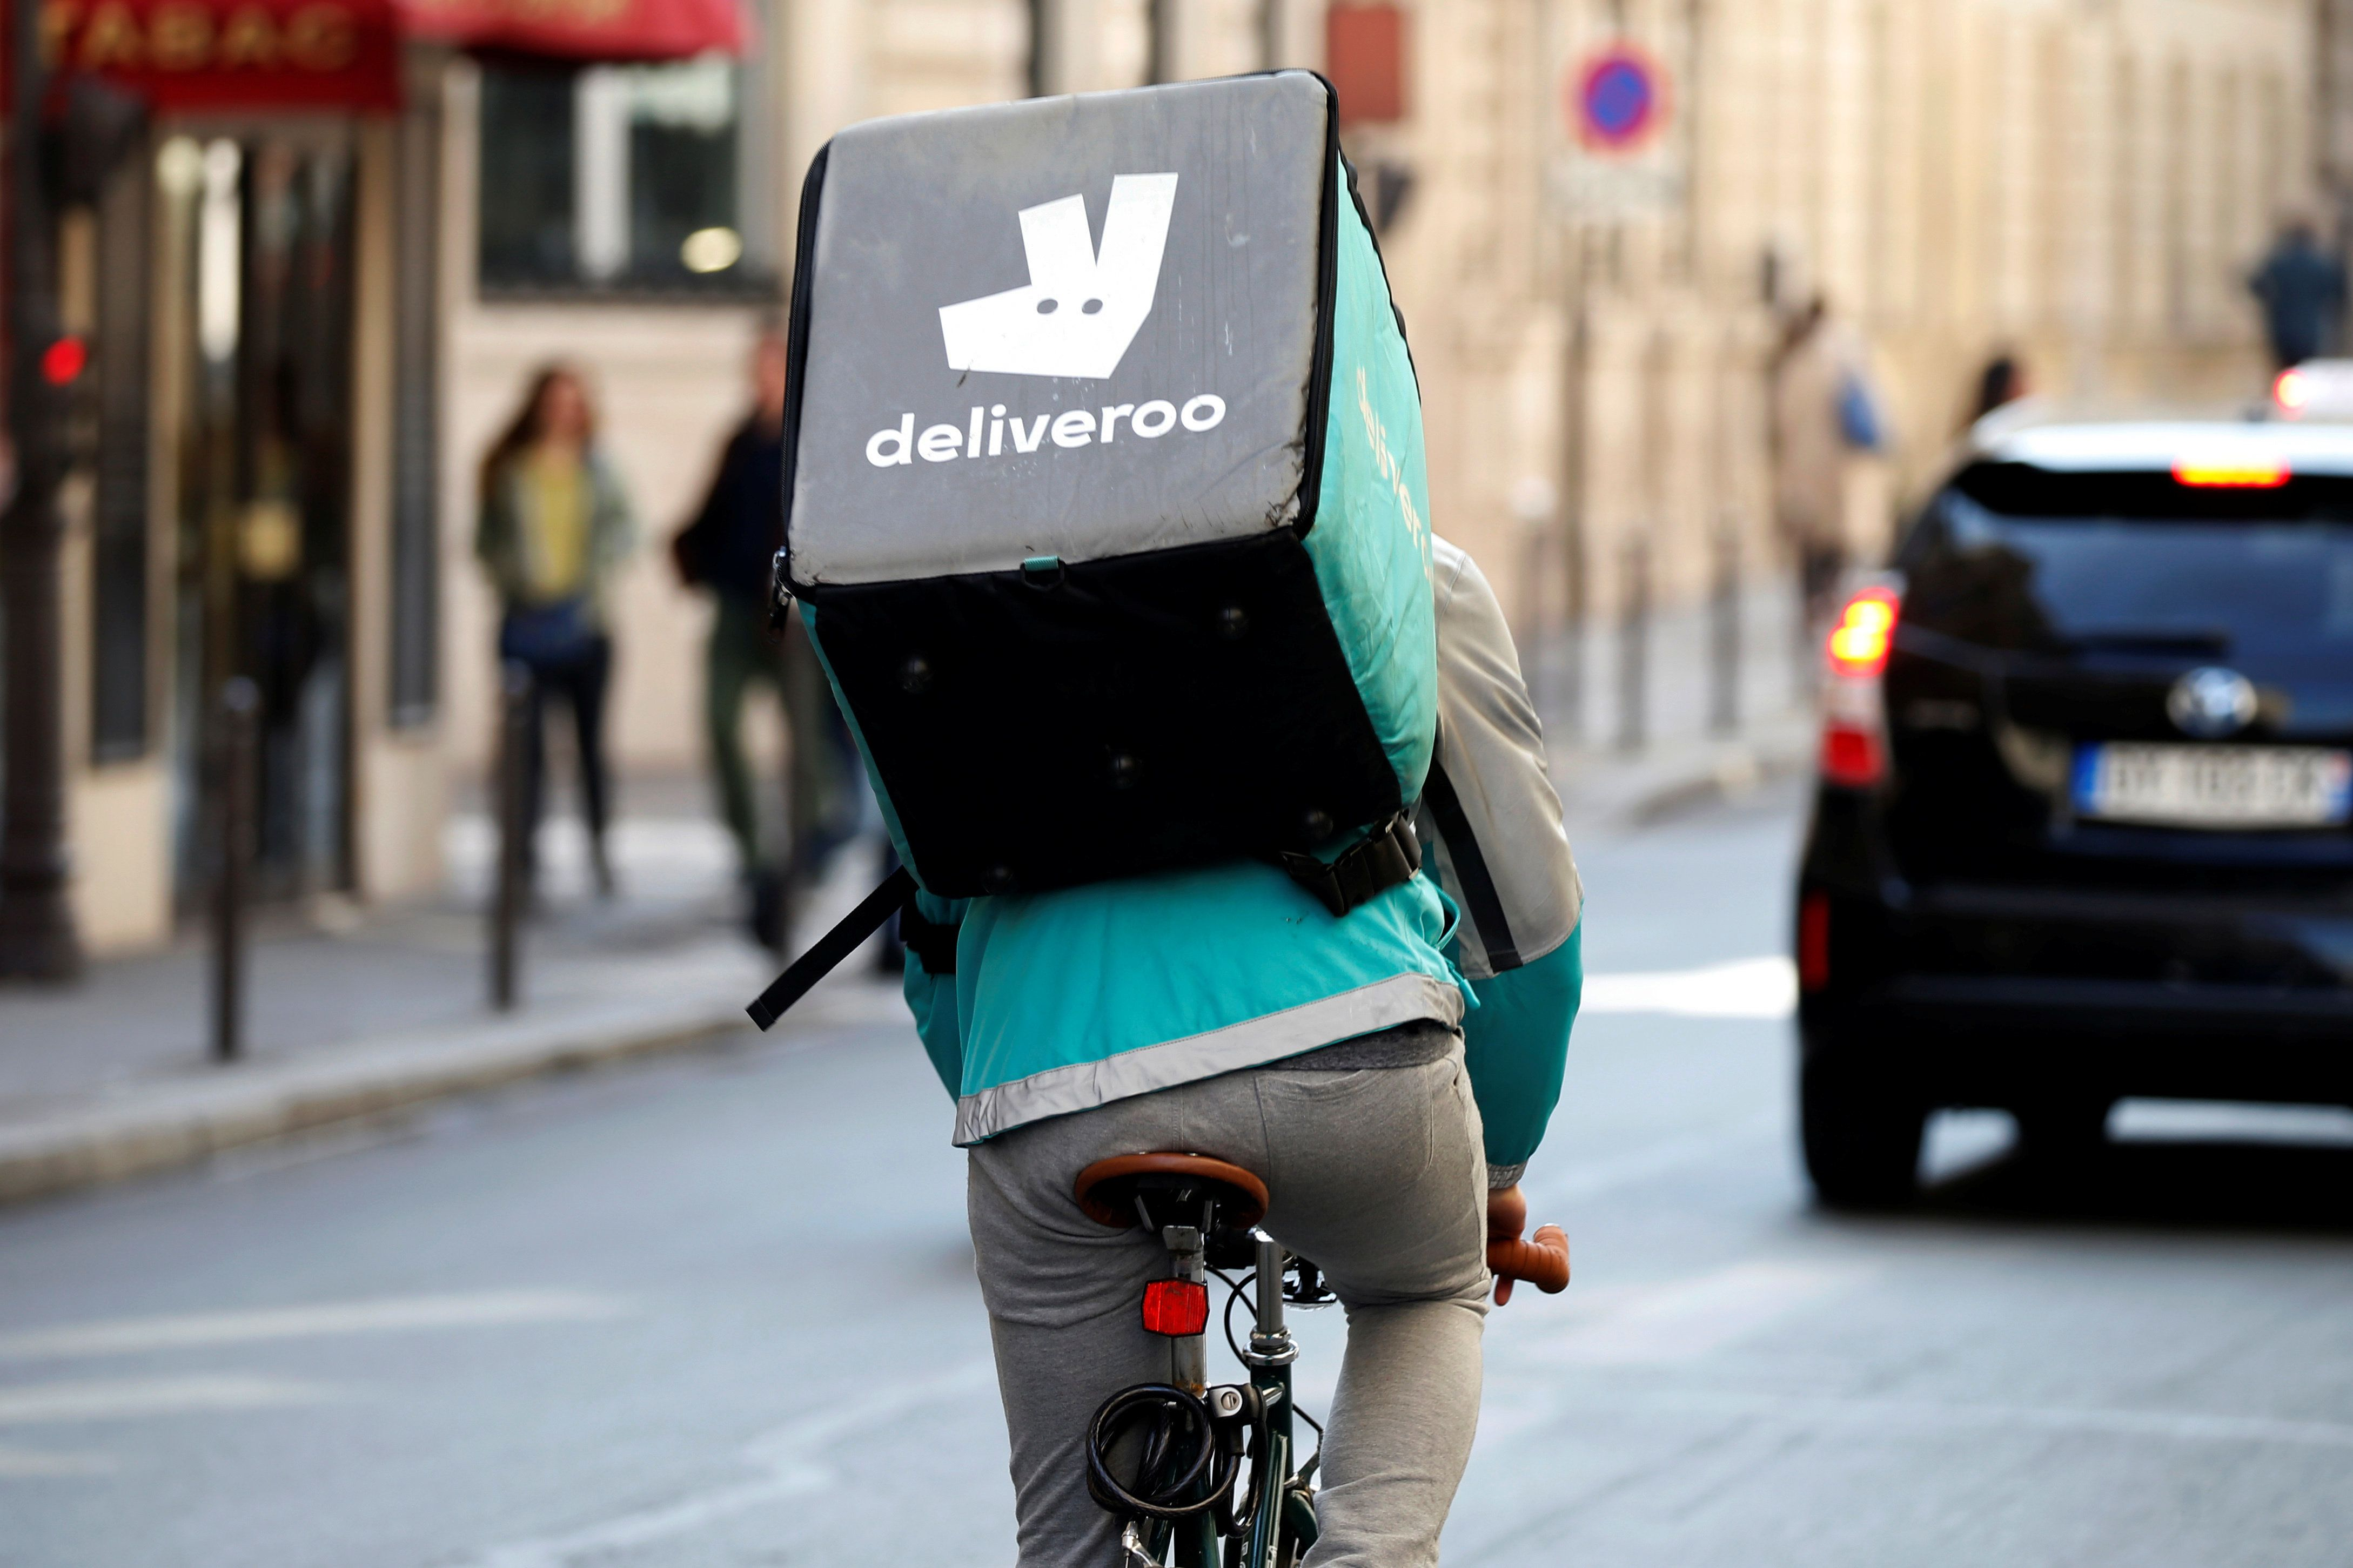 Gig Economy Workers Must Be Protected From 'Appalling' Practices, Urge MPs